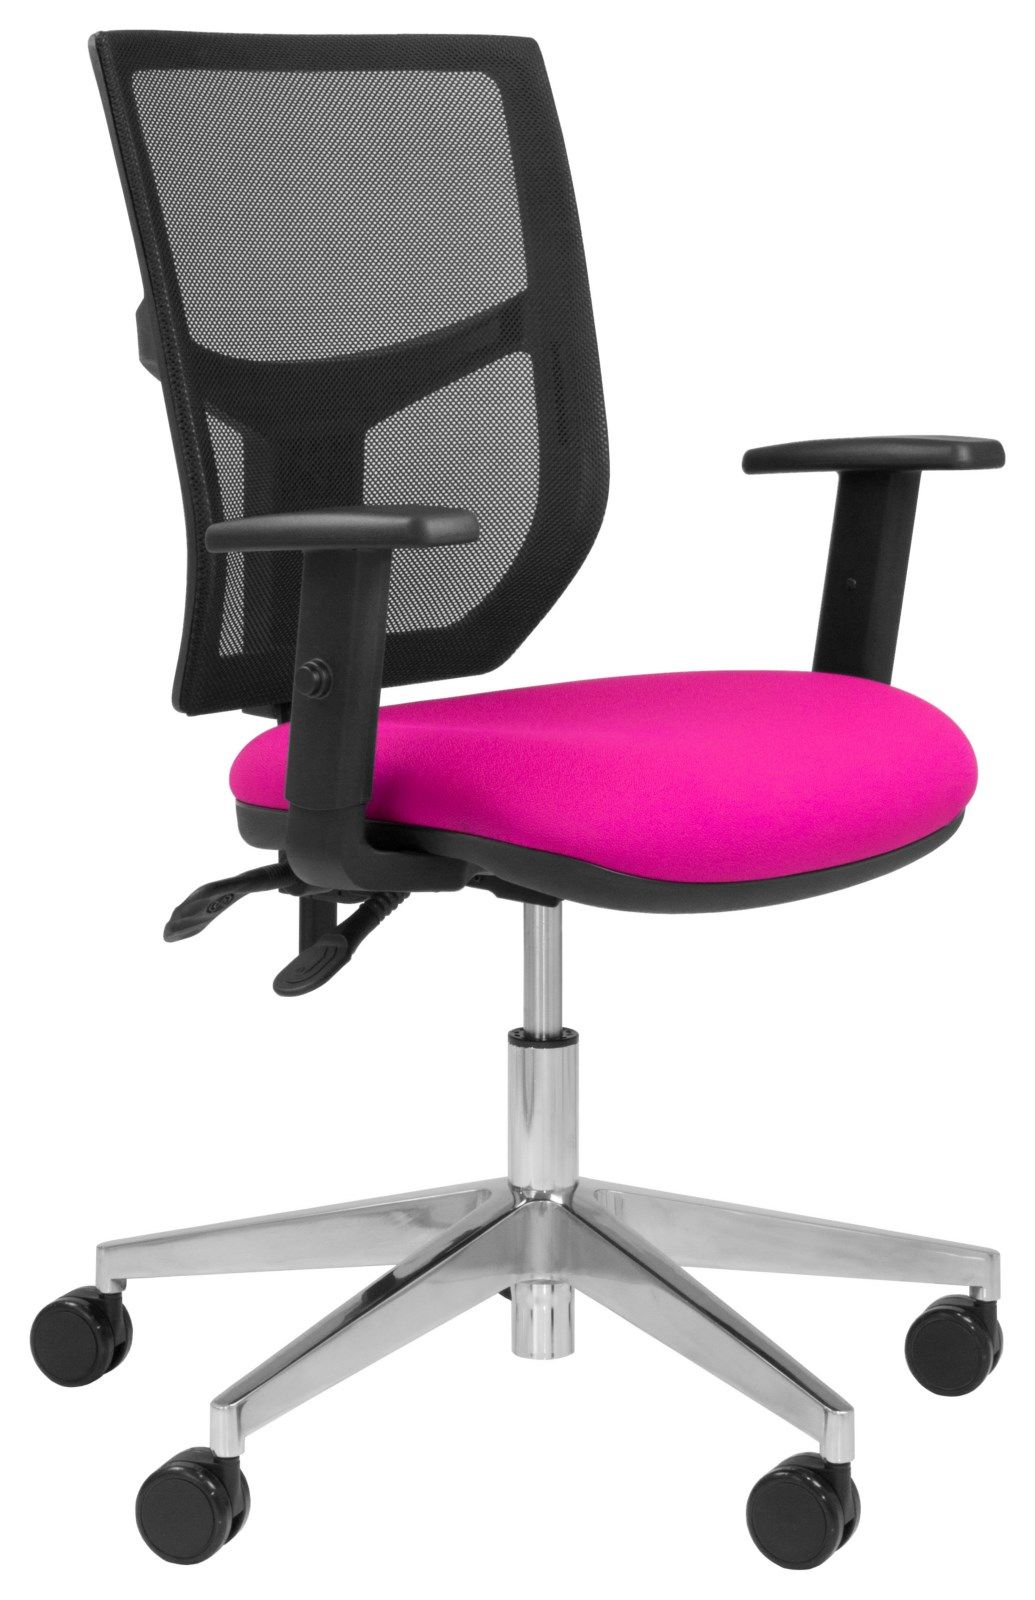 Team Plus Mesh Operator Chair (Polished Base) with Arms